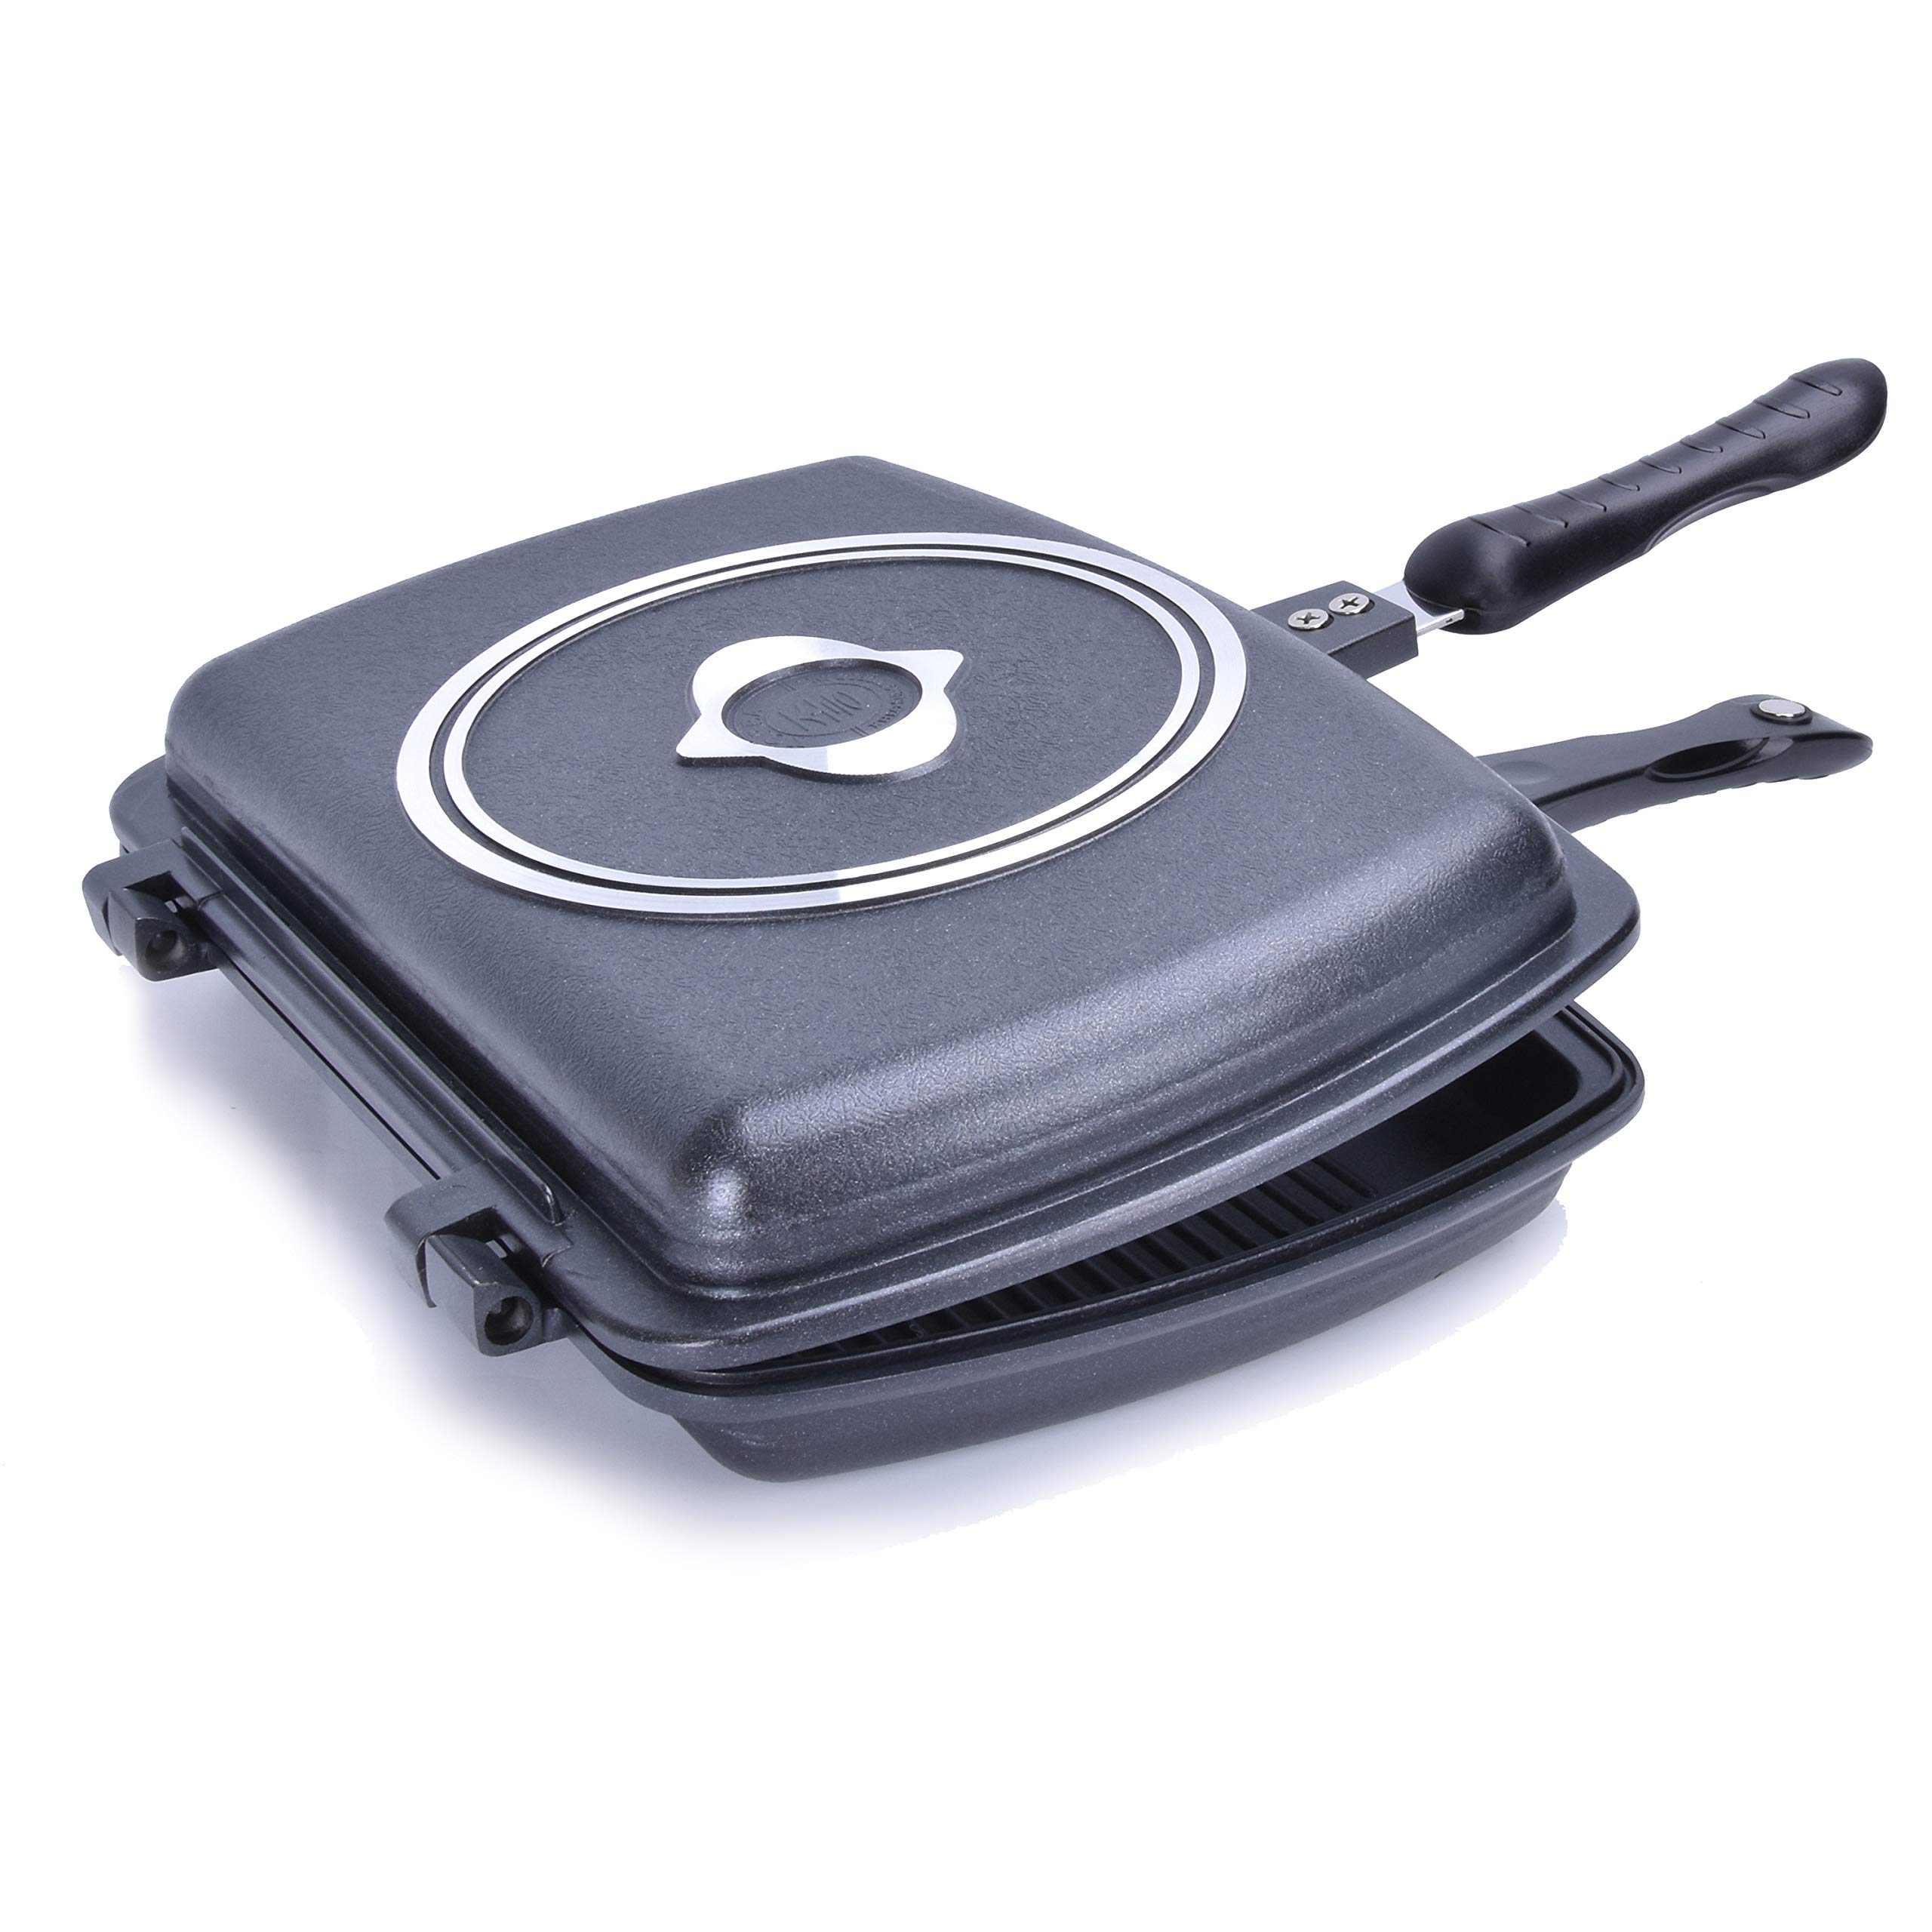 YONATA Double Sided Portable BBQ Grill Pan,Separate Detachable Double Pan Nonstick Barbecue Plate For Indoor and Outdoor Cooked Chicken,Fish,Egg by YONATA (Image #1)